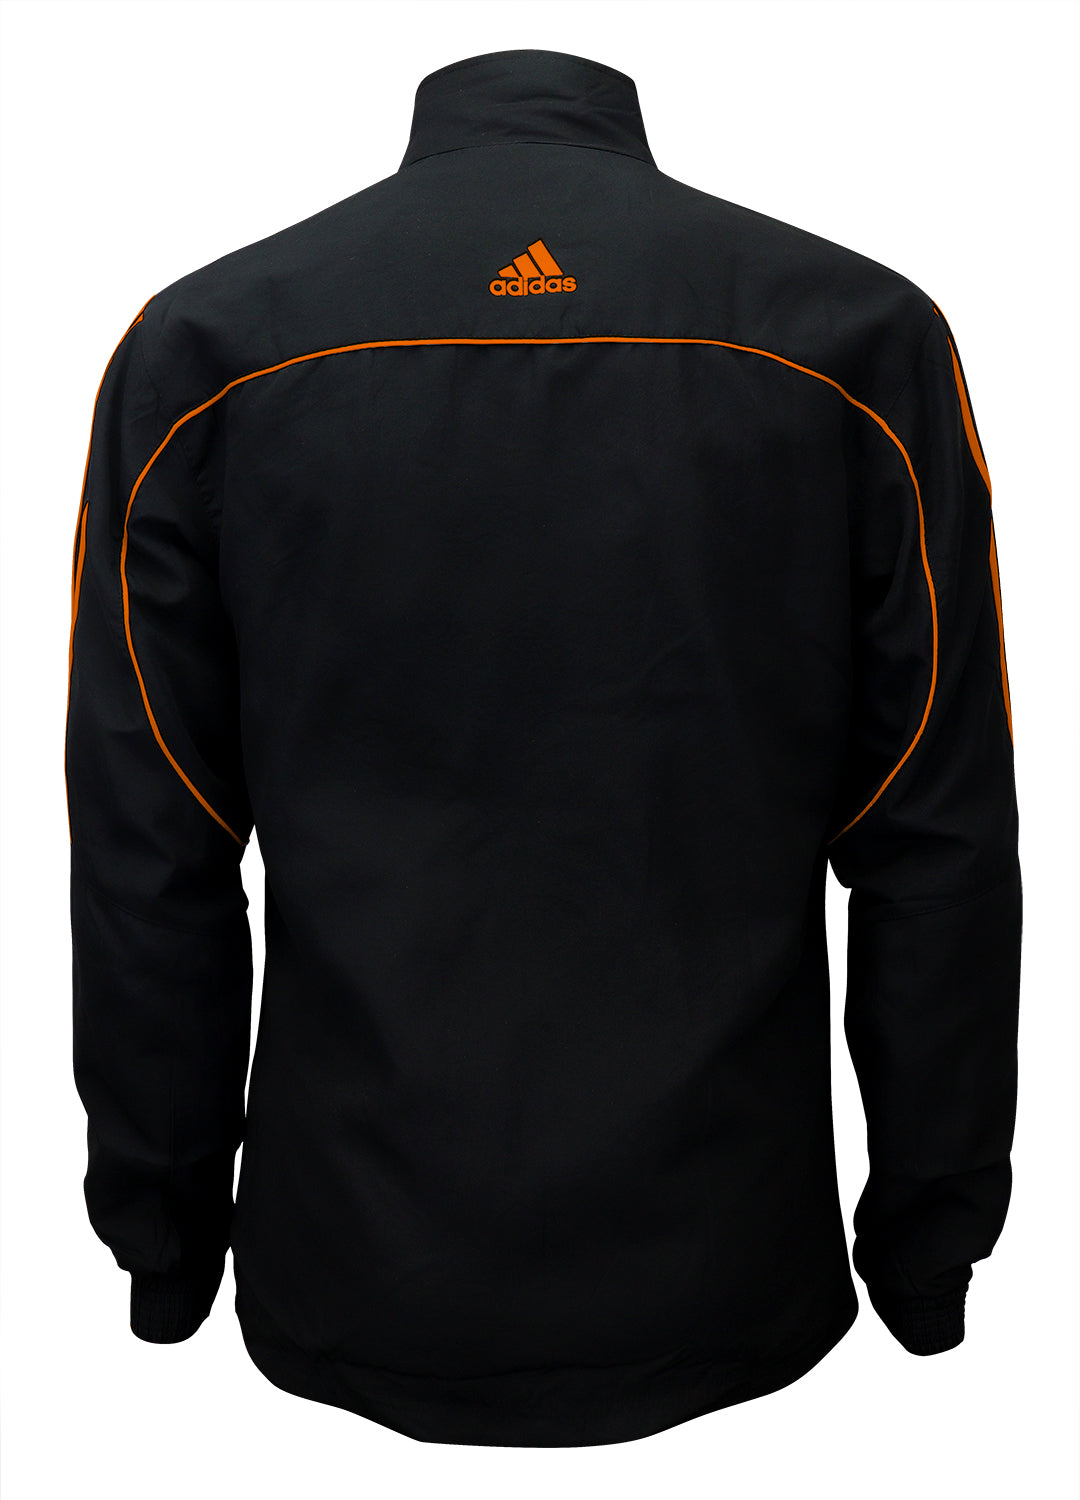 adidas Black with Neon Orange Stripes Windbreaker Style Team Jacket Back View